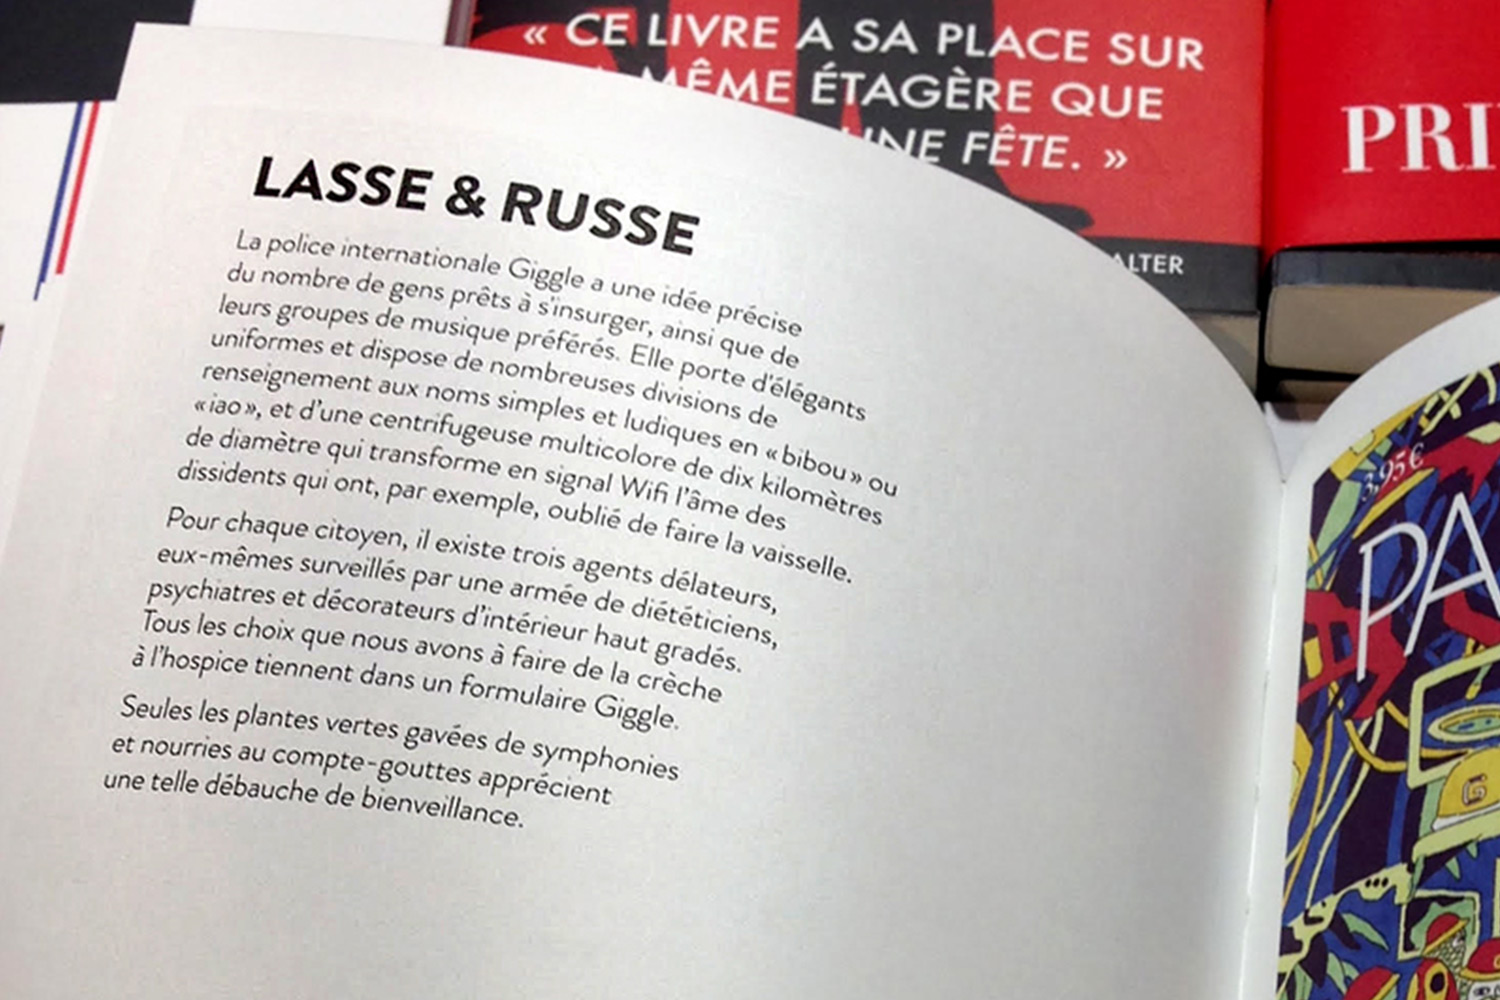 MaisonTangible_InterviewTimbree_S0306_LasseRusse_04Article_12.jpg